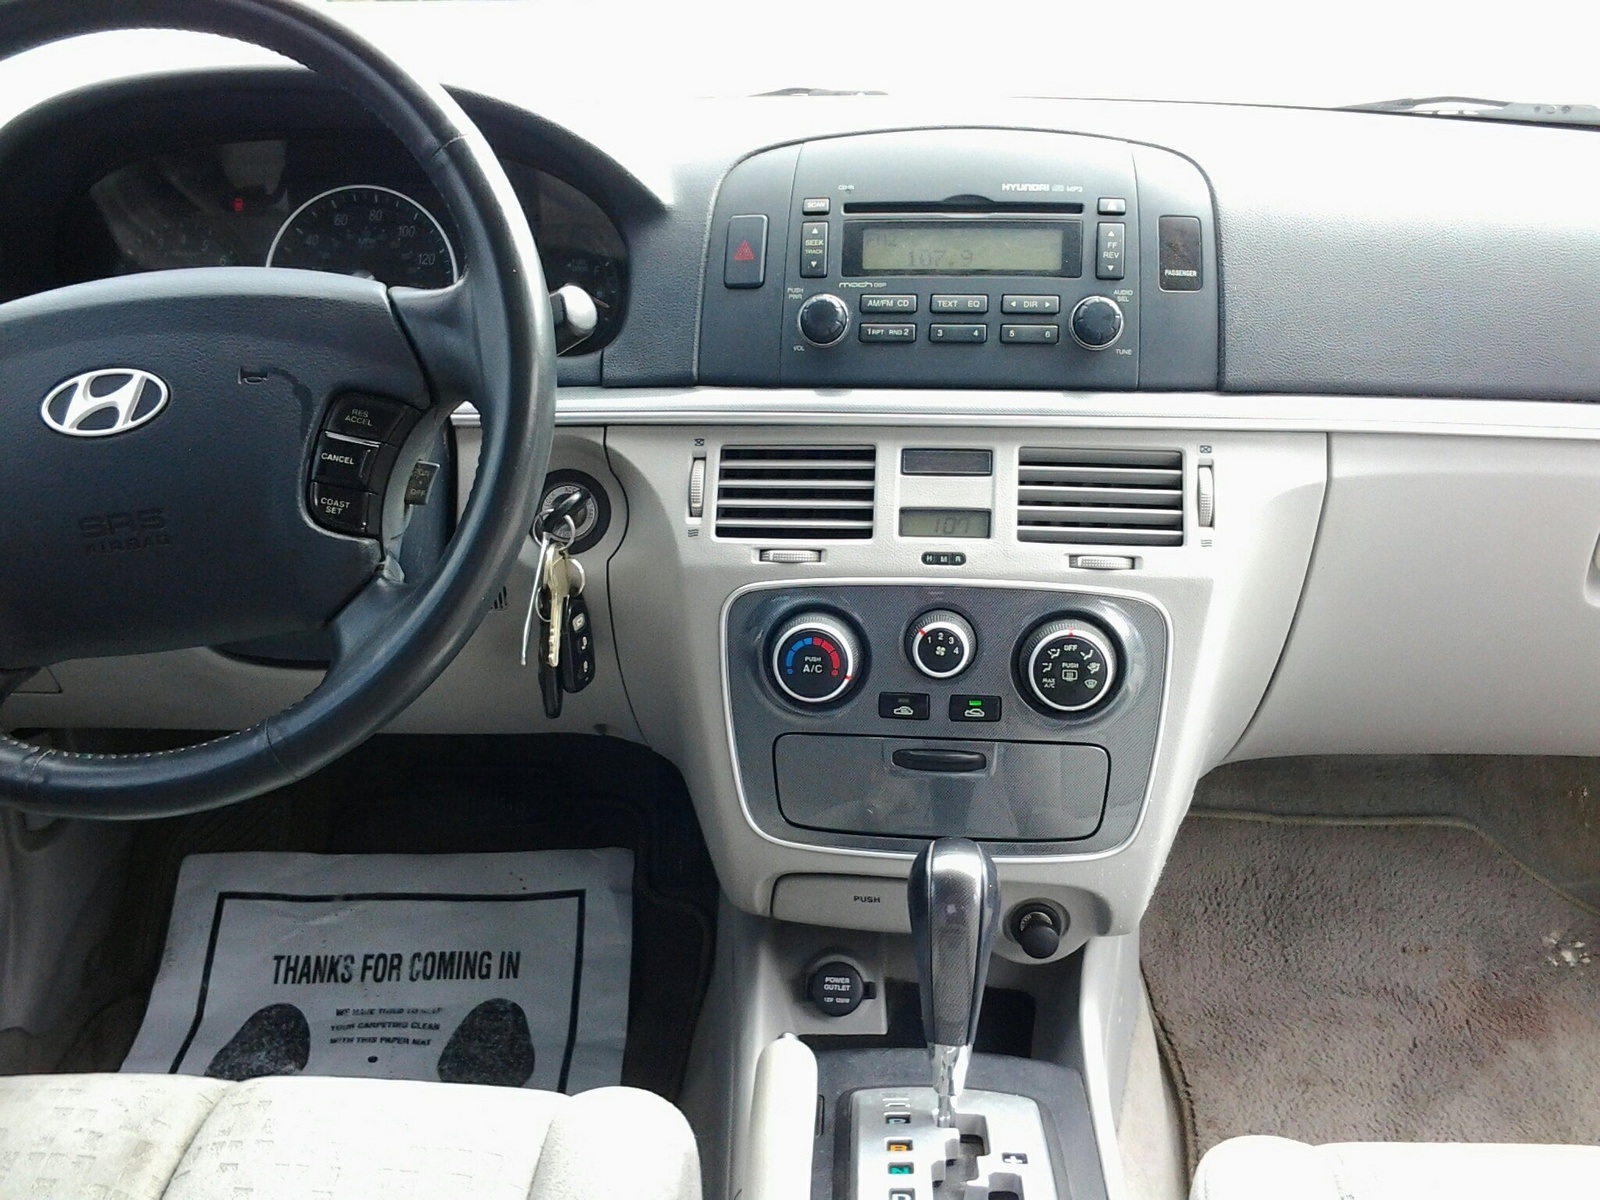 Picture Of 2006 Hyundai Sonata Gls Interior